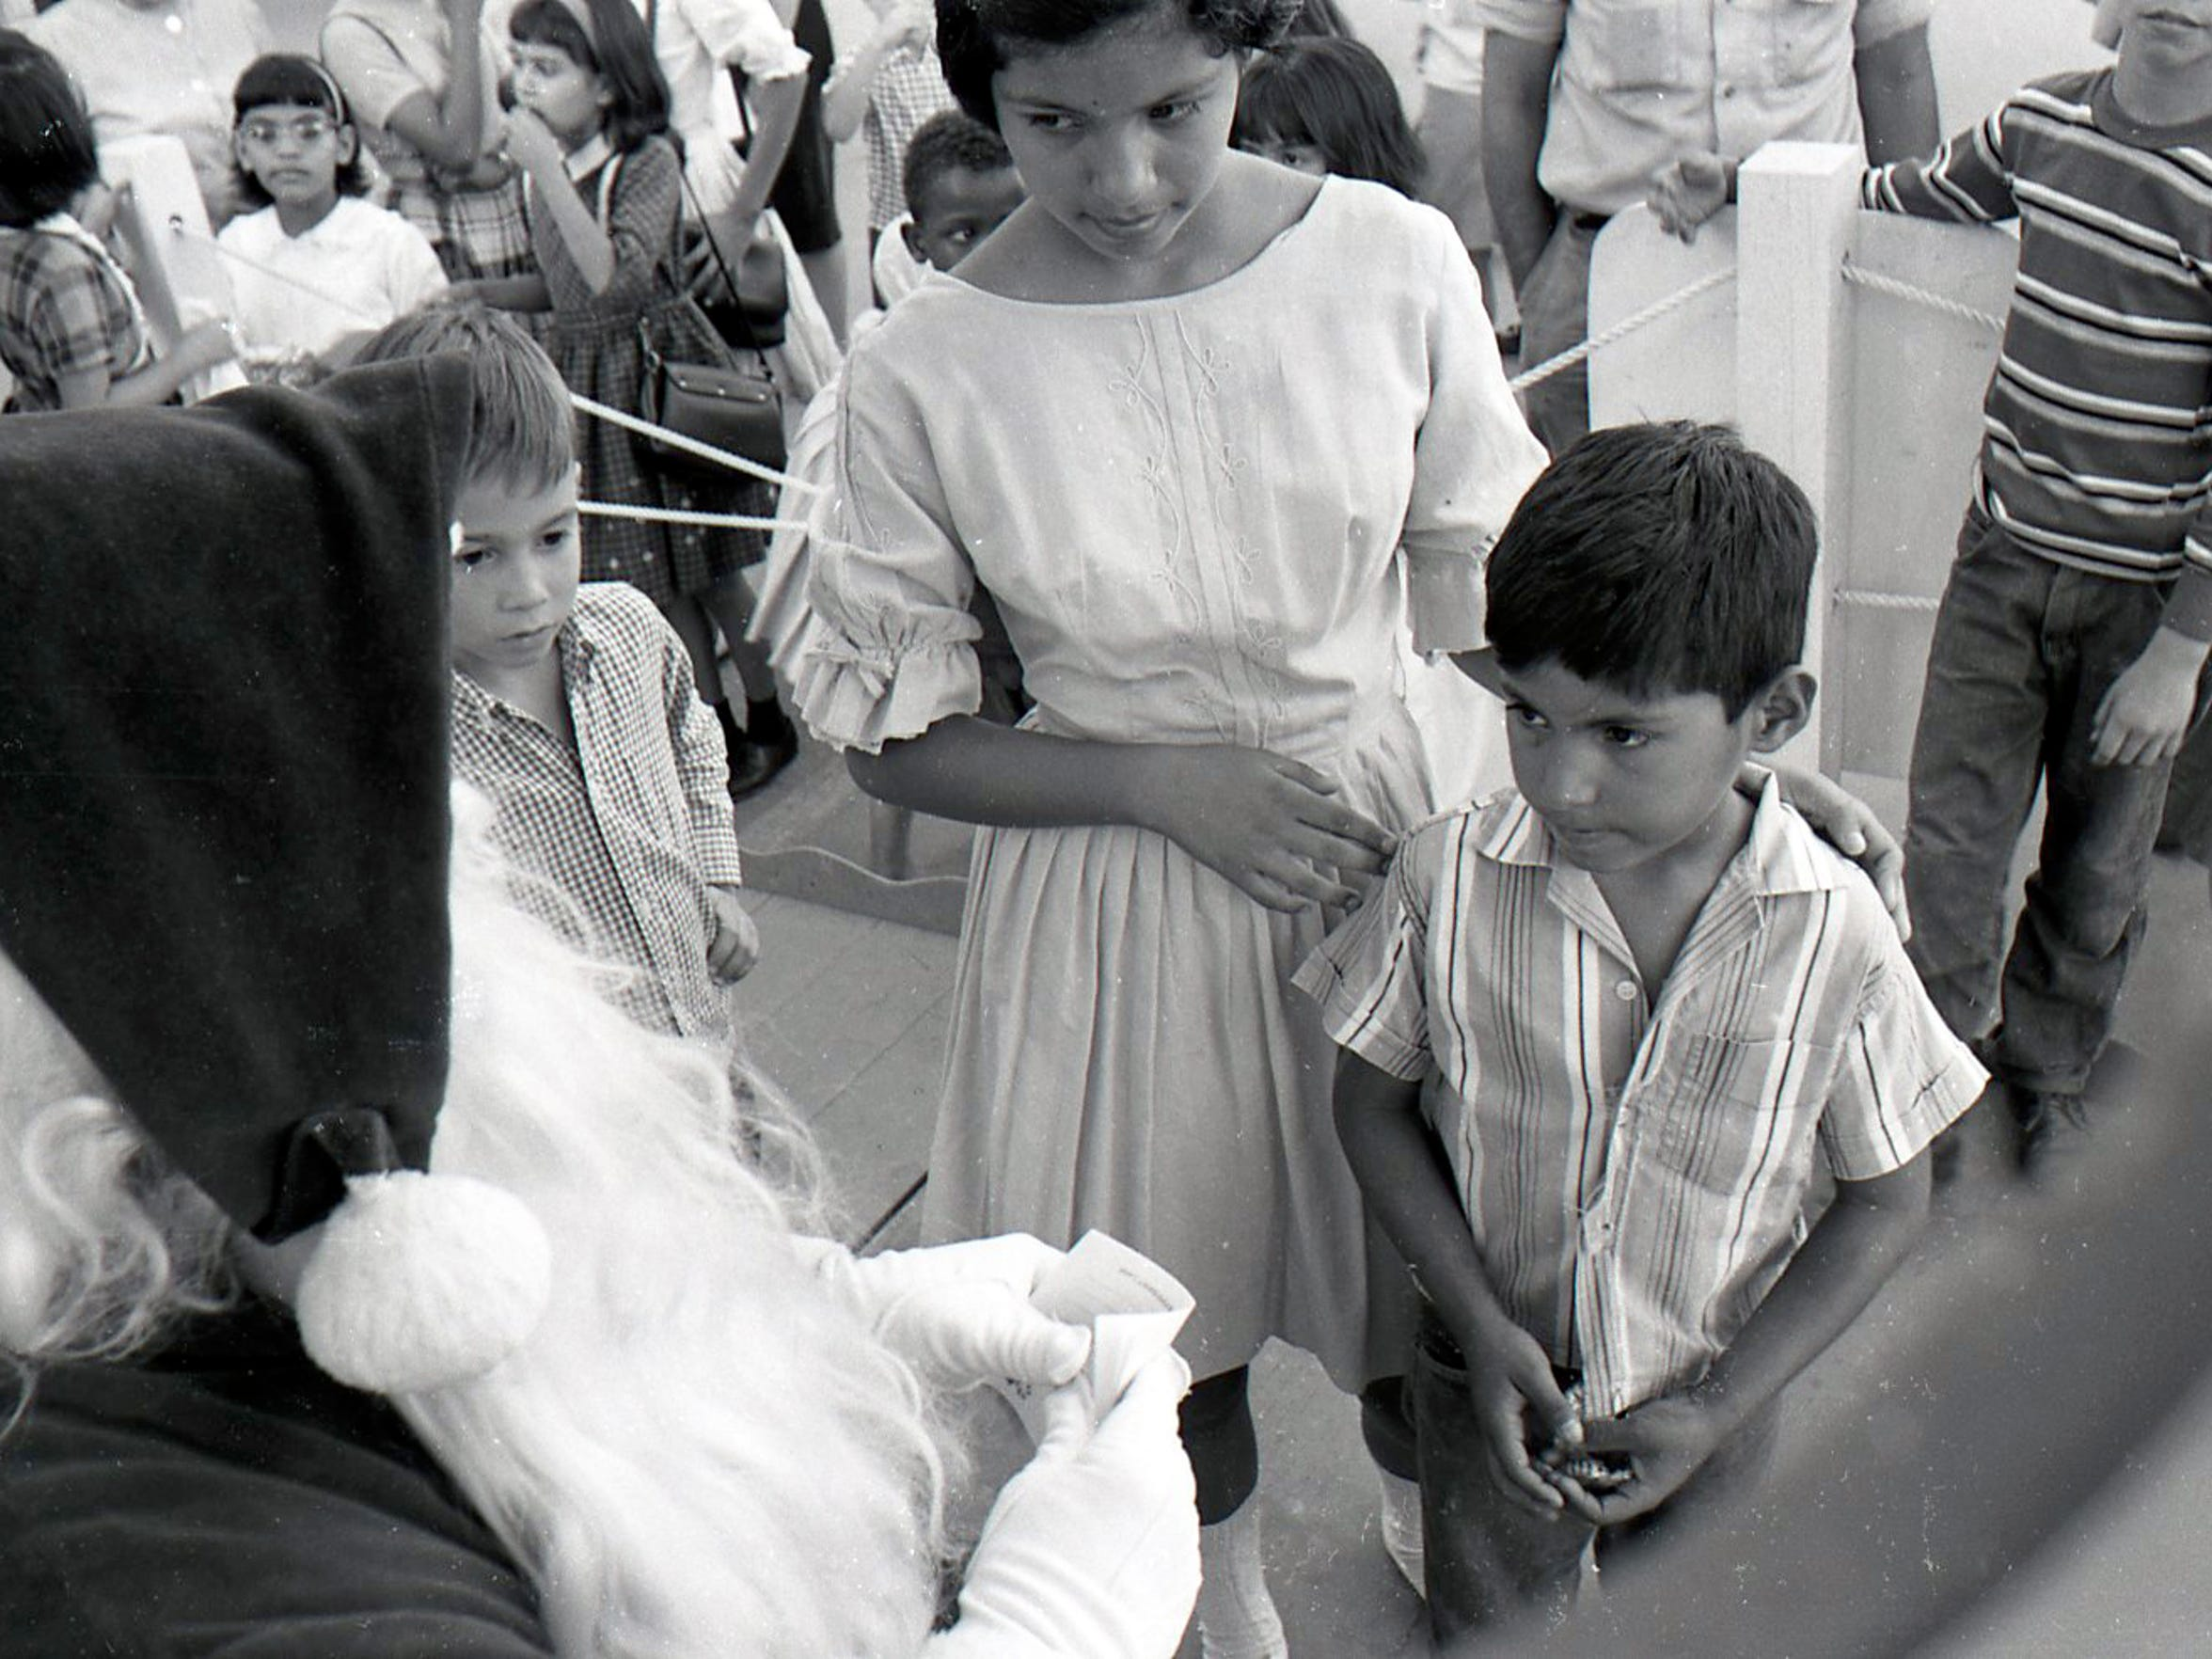 Kids meet with Santa at Peppermint Lane on Chaparral Street in Corpus Christi in 1965.